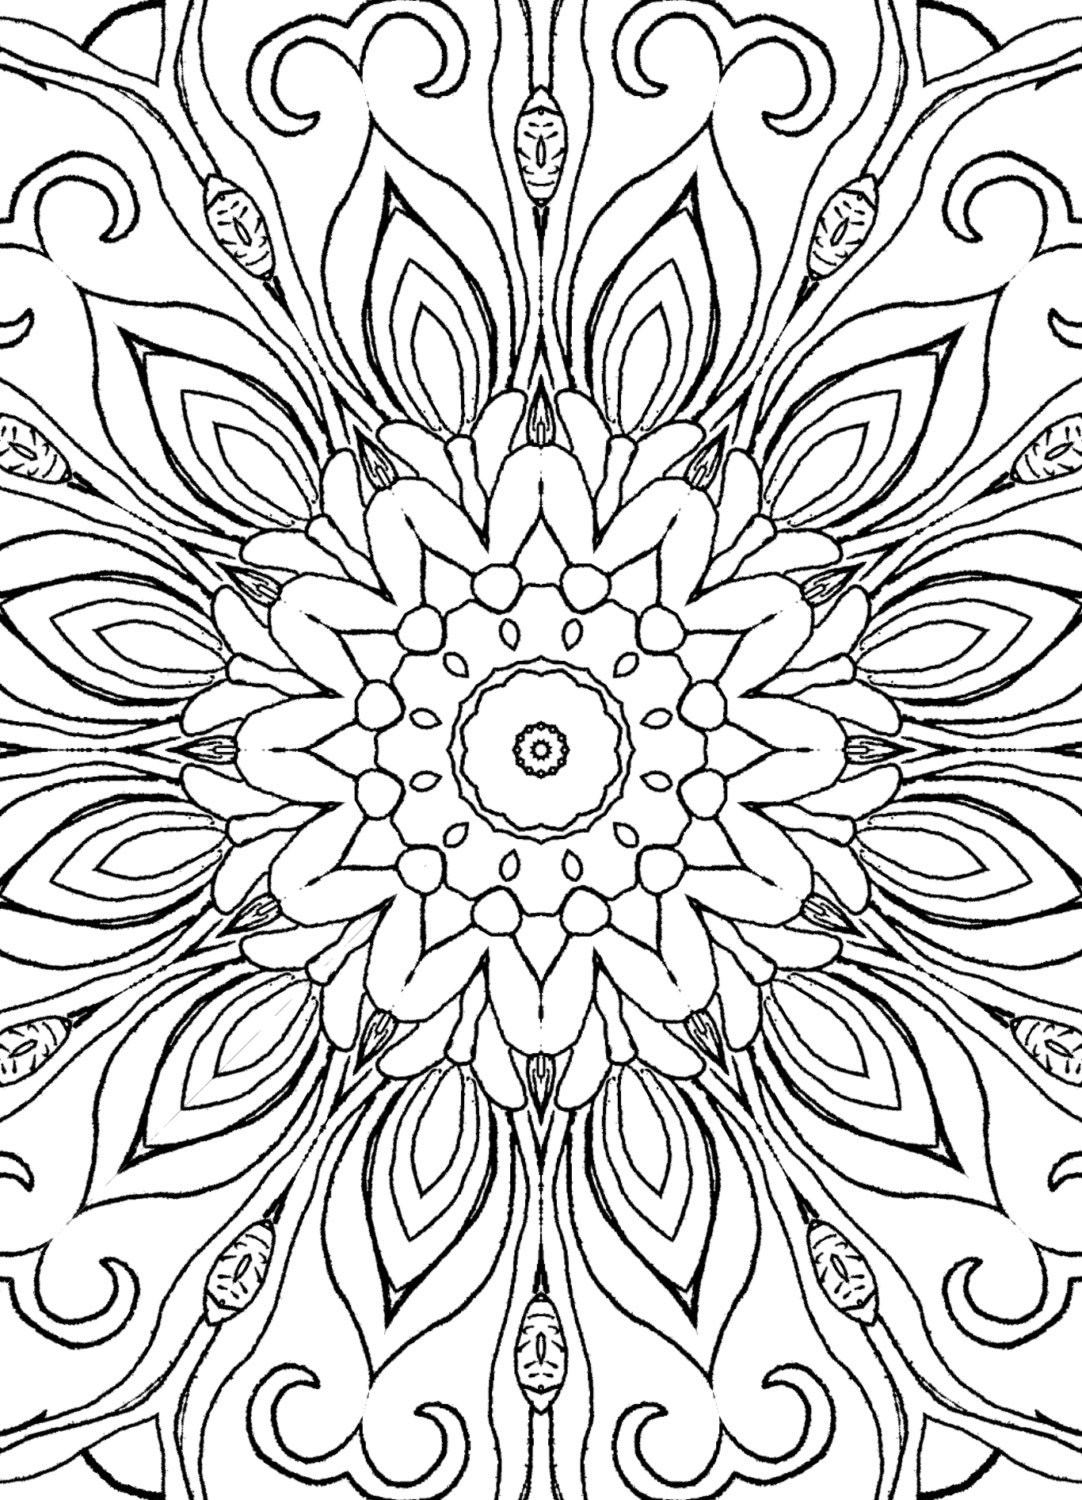 25 Coloring Pages including Mandalas